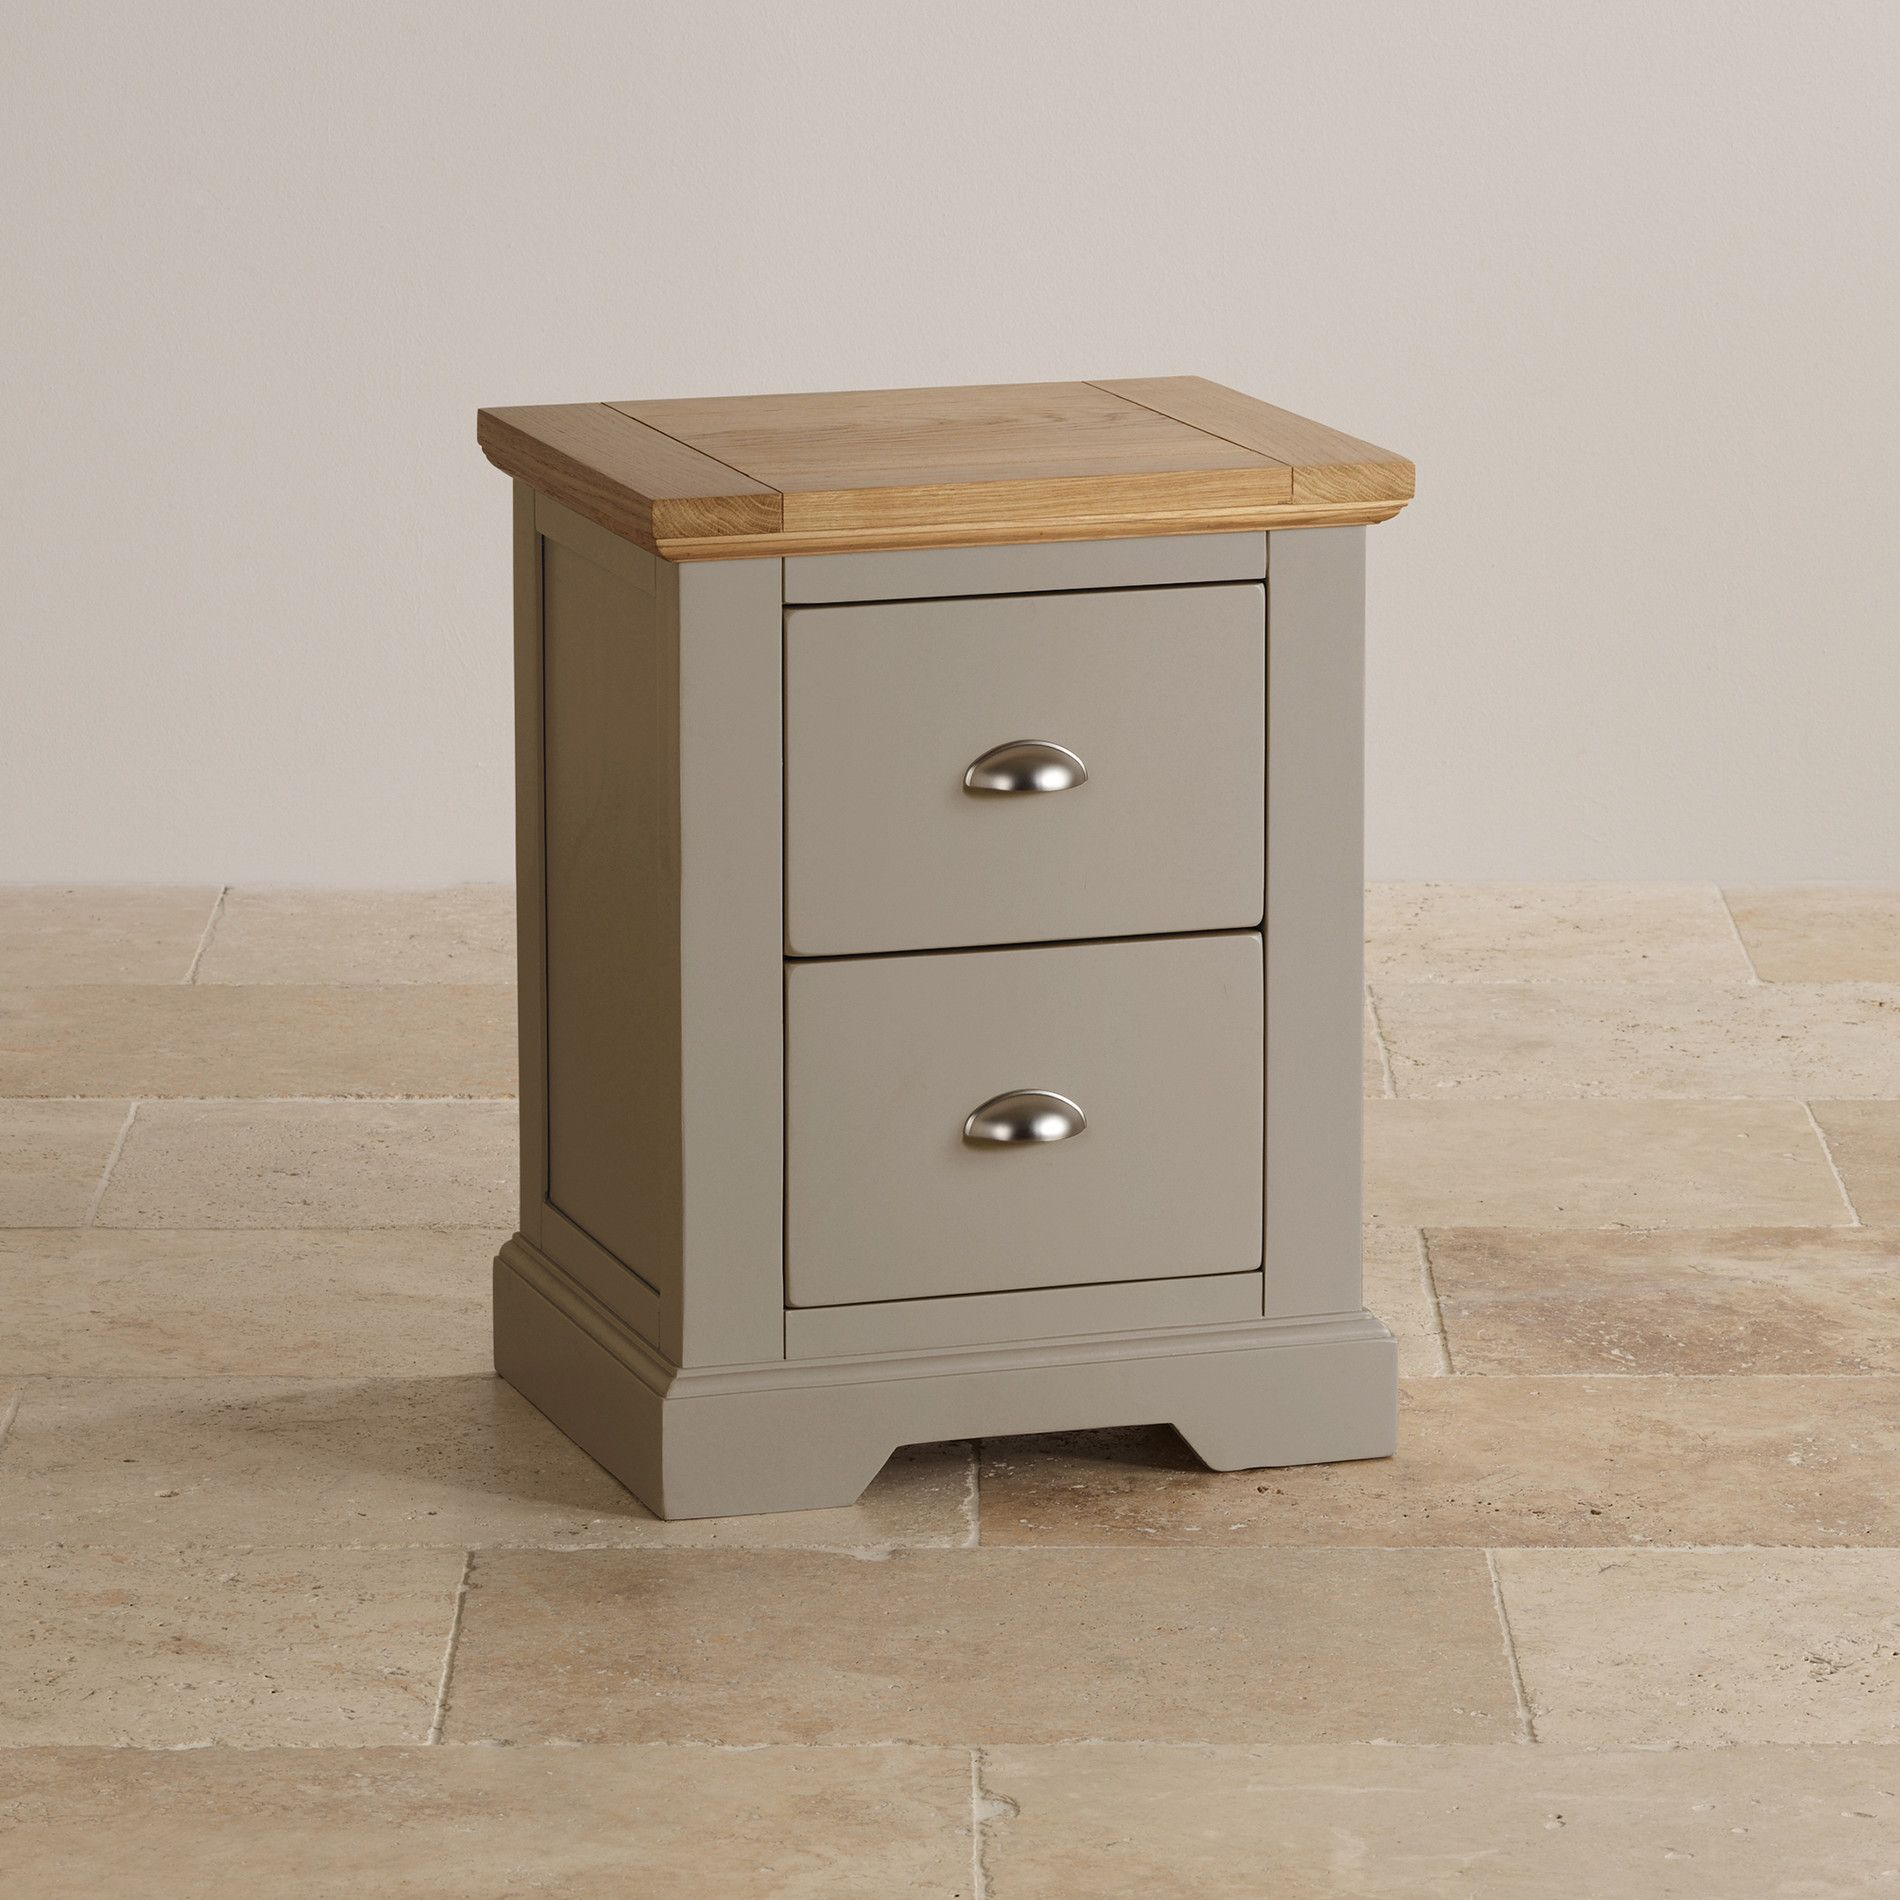 St Ives Natural Oak and Light Grey Painted 2 Drawer Bedside Table & St Ives Natural Oak and Light Grey Painted 2 Drawer Bedside Table ...